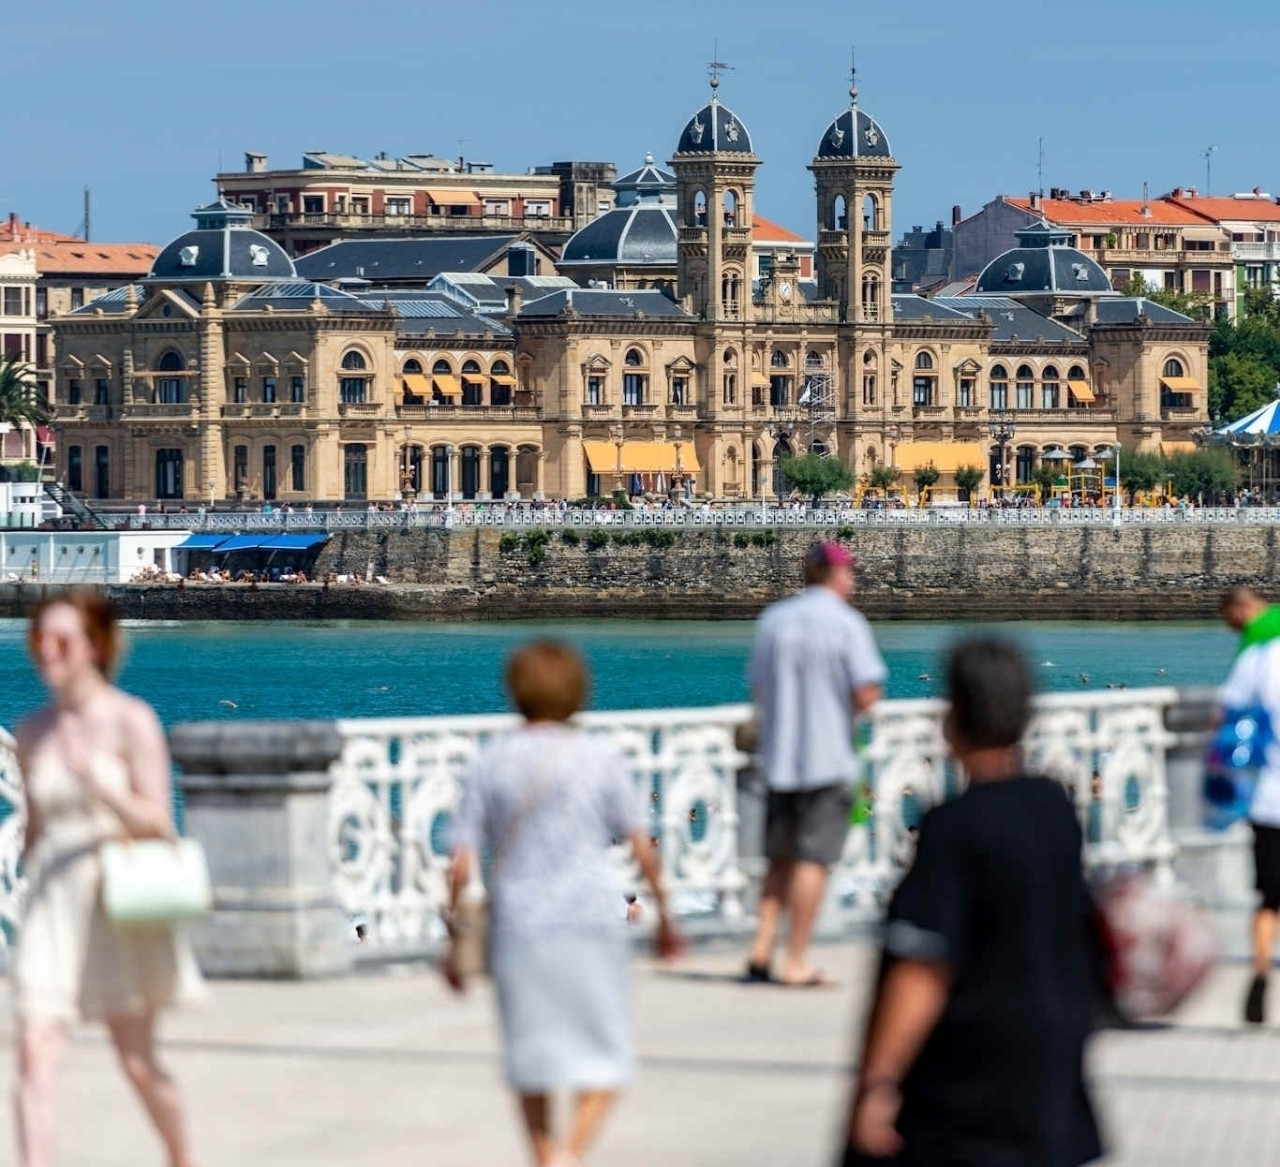 promenade of San Sebastian with city hall and strolling pedestrians in the foreground